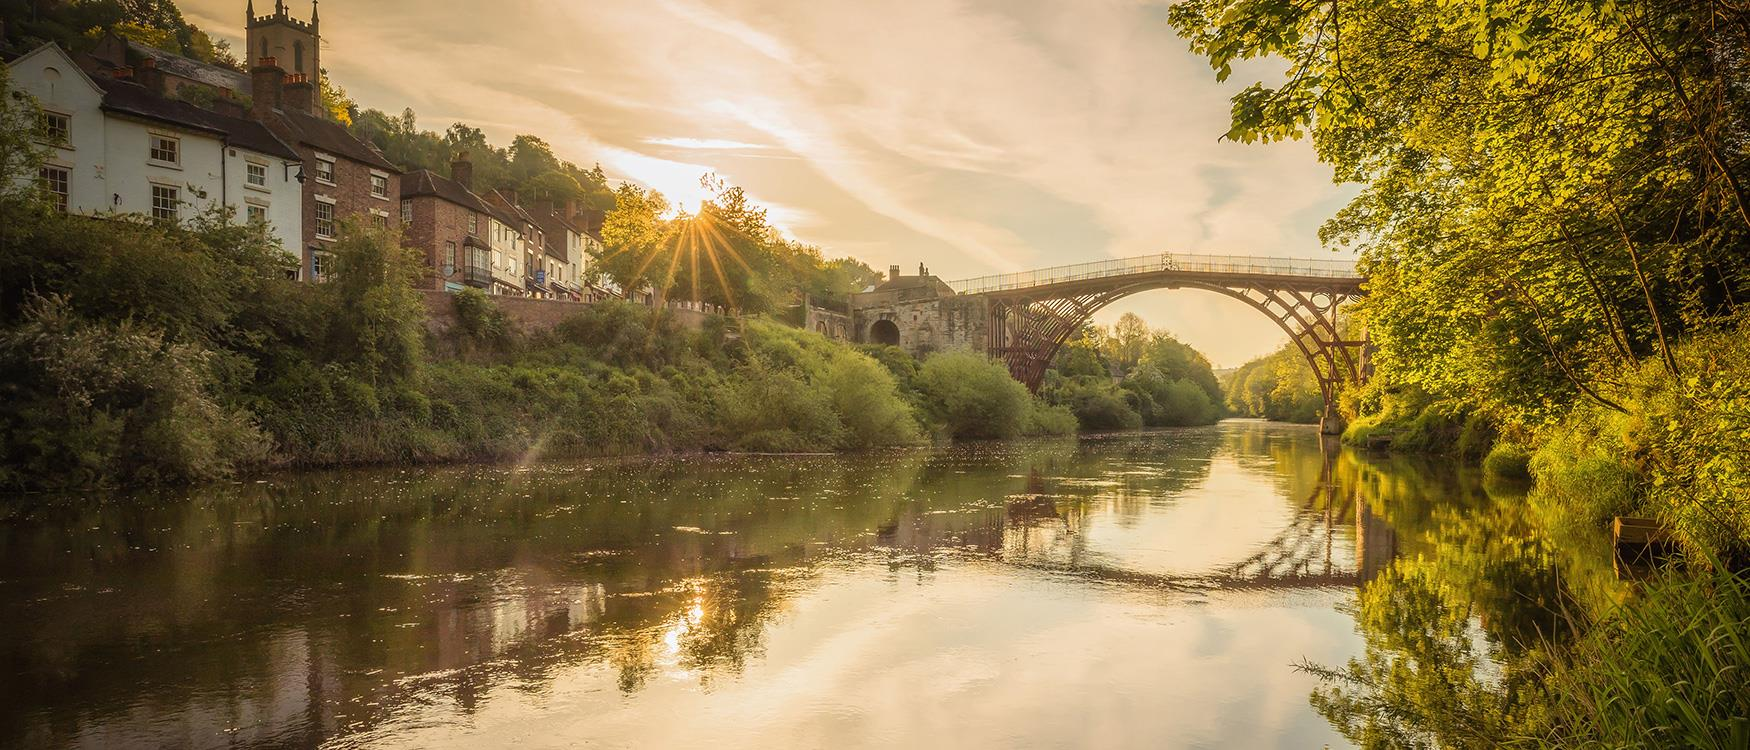 Ironbridge & Gorge Museums